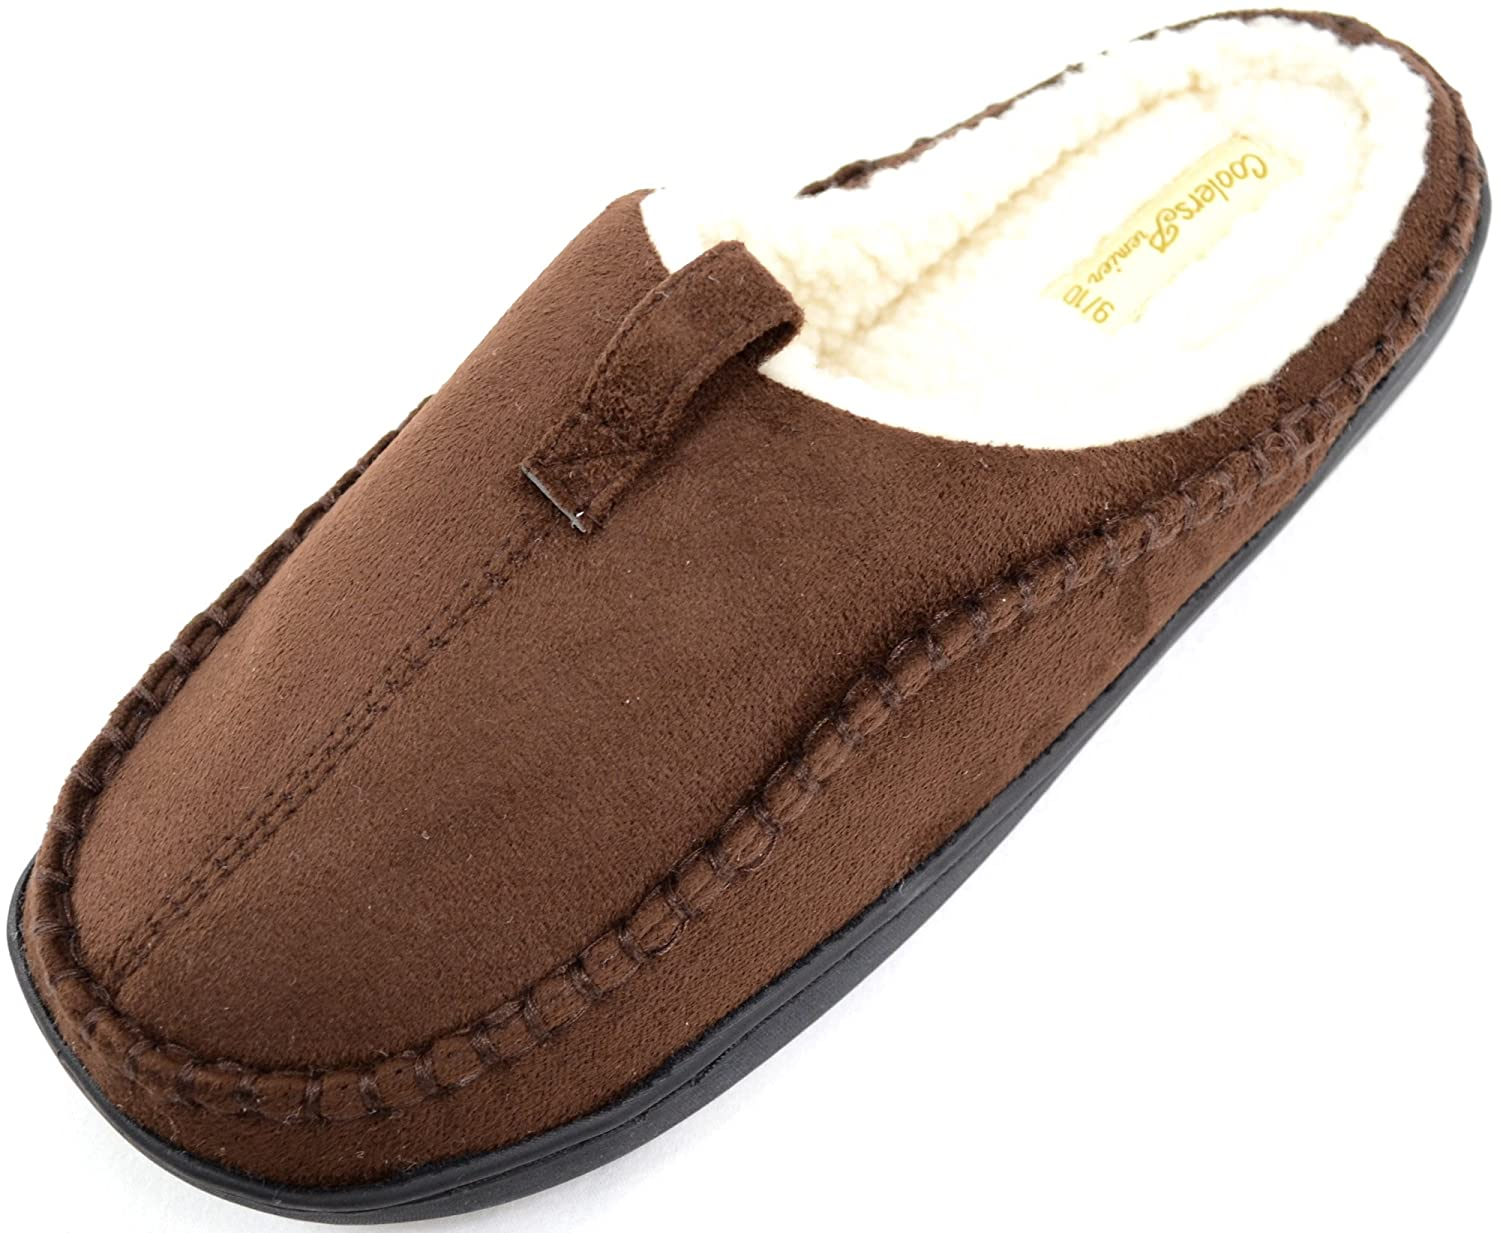 ABSOLUTE FOOTWEAR Mens Soft Fleece Mules//Slippers//Indoor Shoes with Warm Faux Fur Inners